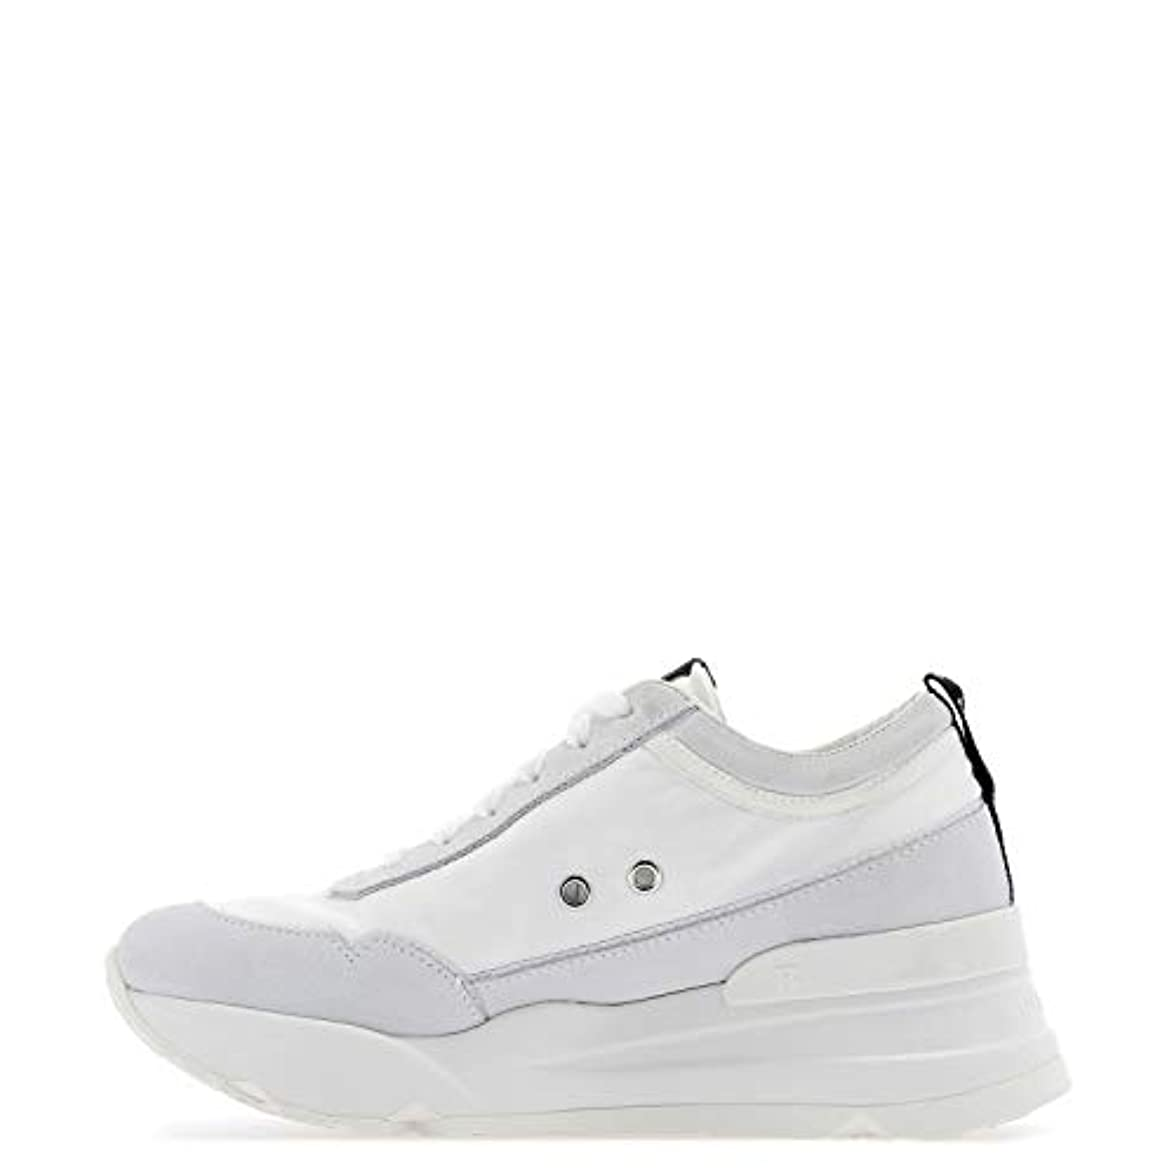 Sneakers Ruco Donna Line 404110330 Bianco Tessuto